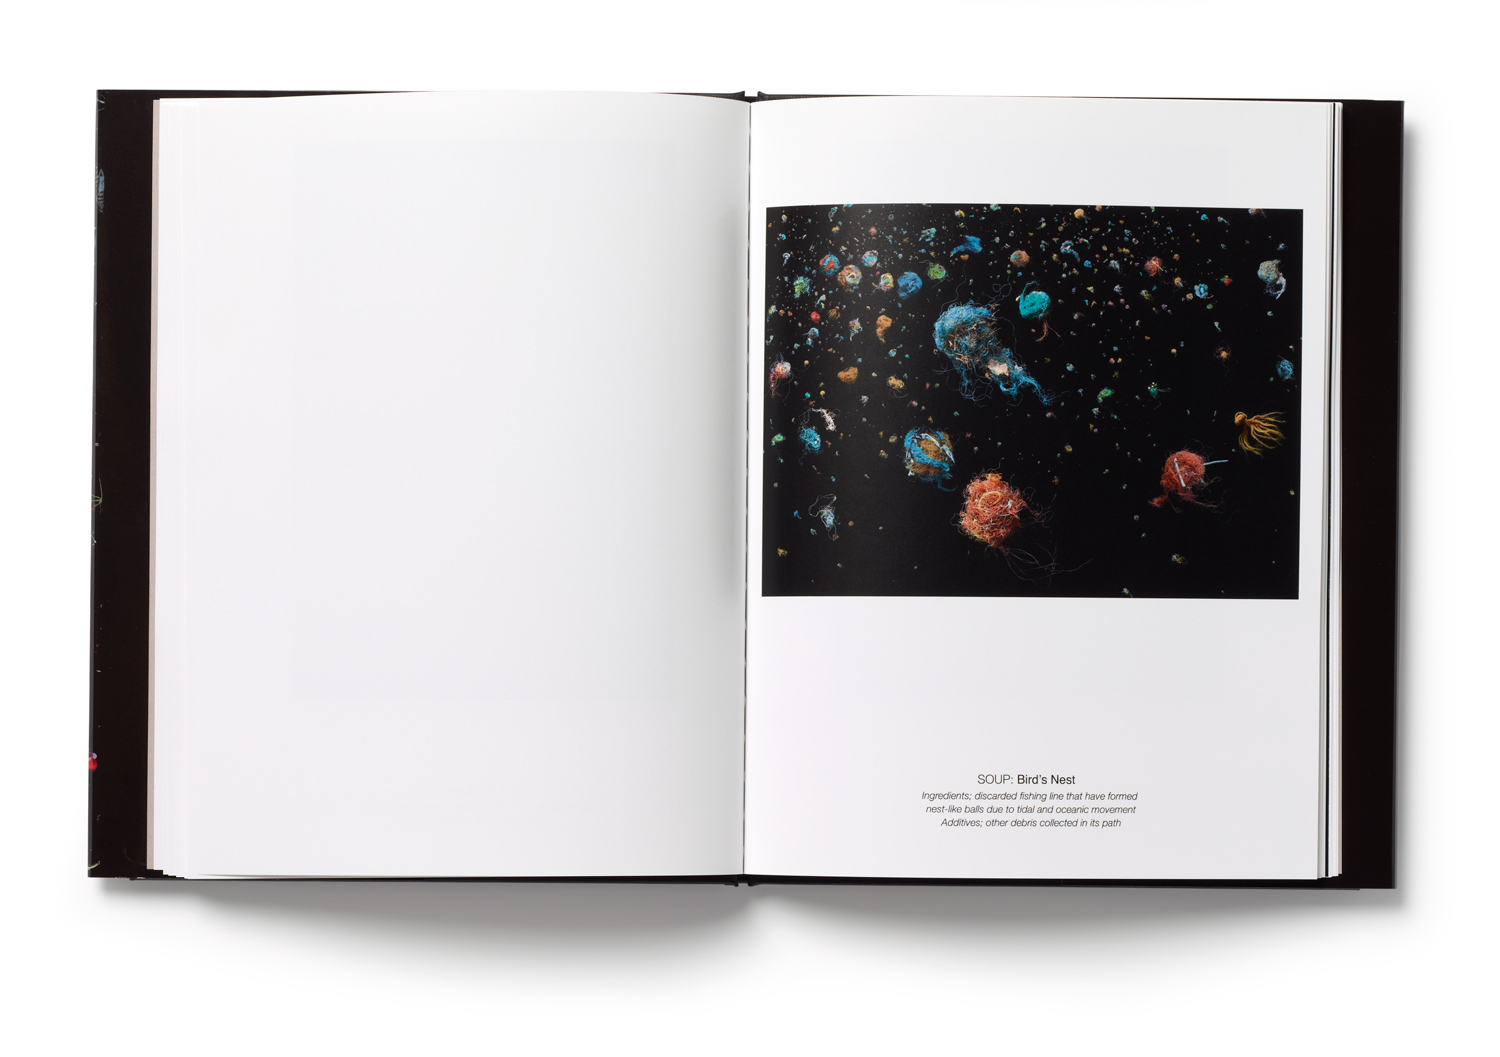 An inside spread of Mandy Barker's book SOUP. The artist say's,  The series of images aim to engage with, and stimulate an emotional response in the viewer by combining a contradiction between initial aesthetic attraction and social awareness.